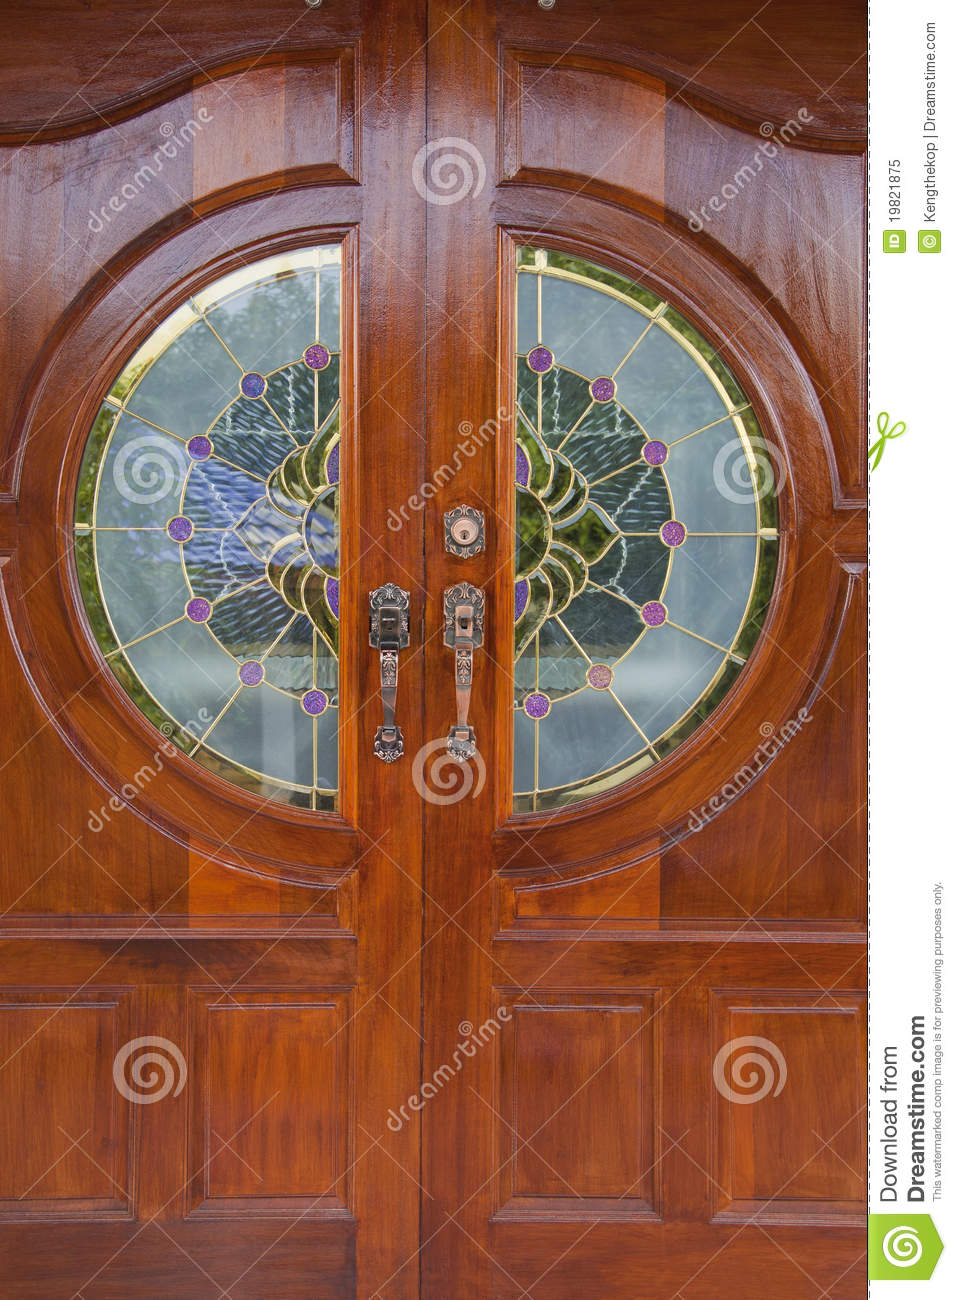 Wood Grain Door Covers The Stained Glass Royalty Free Stock Photo Image 19821875